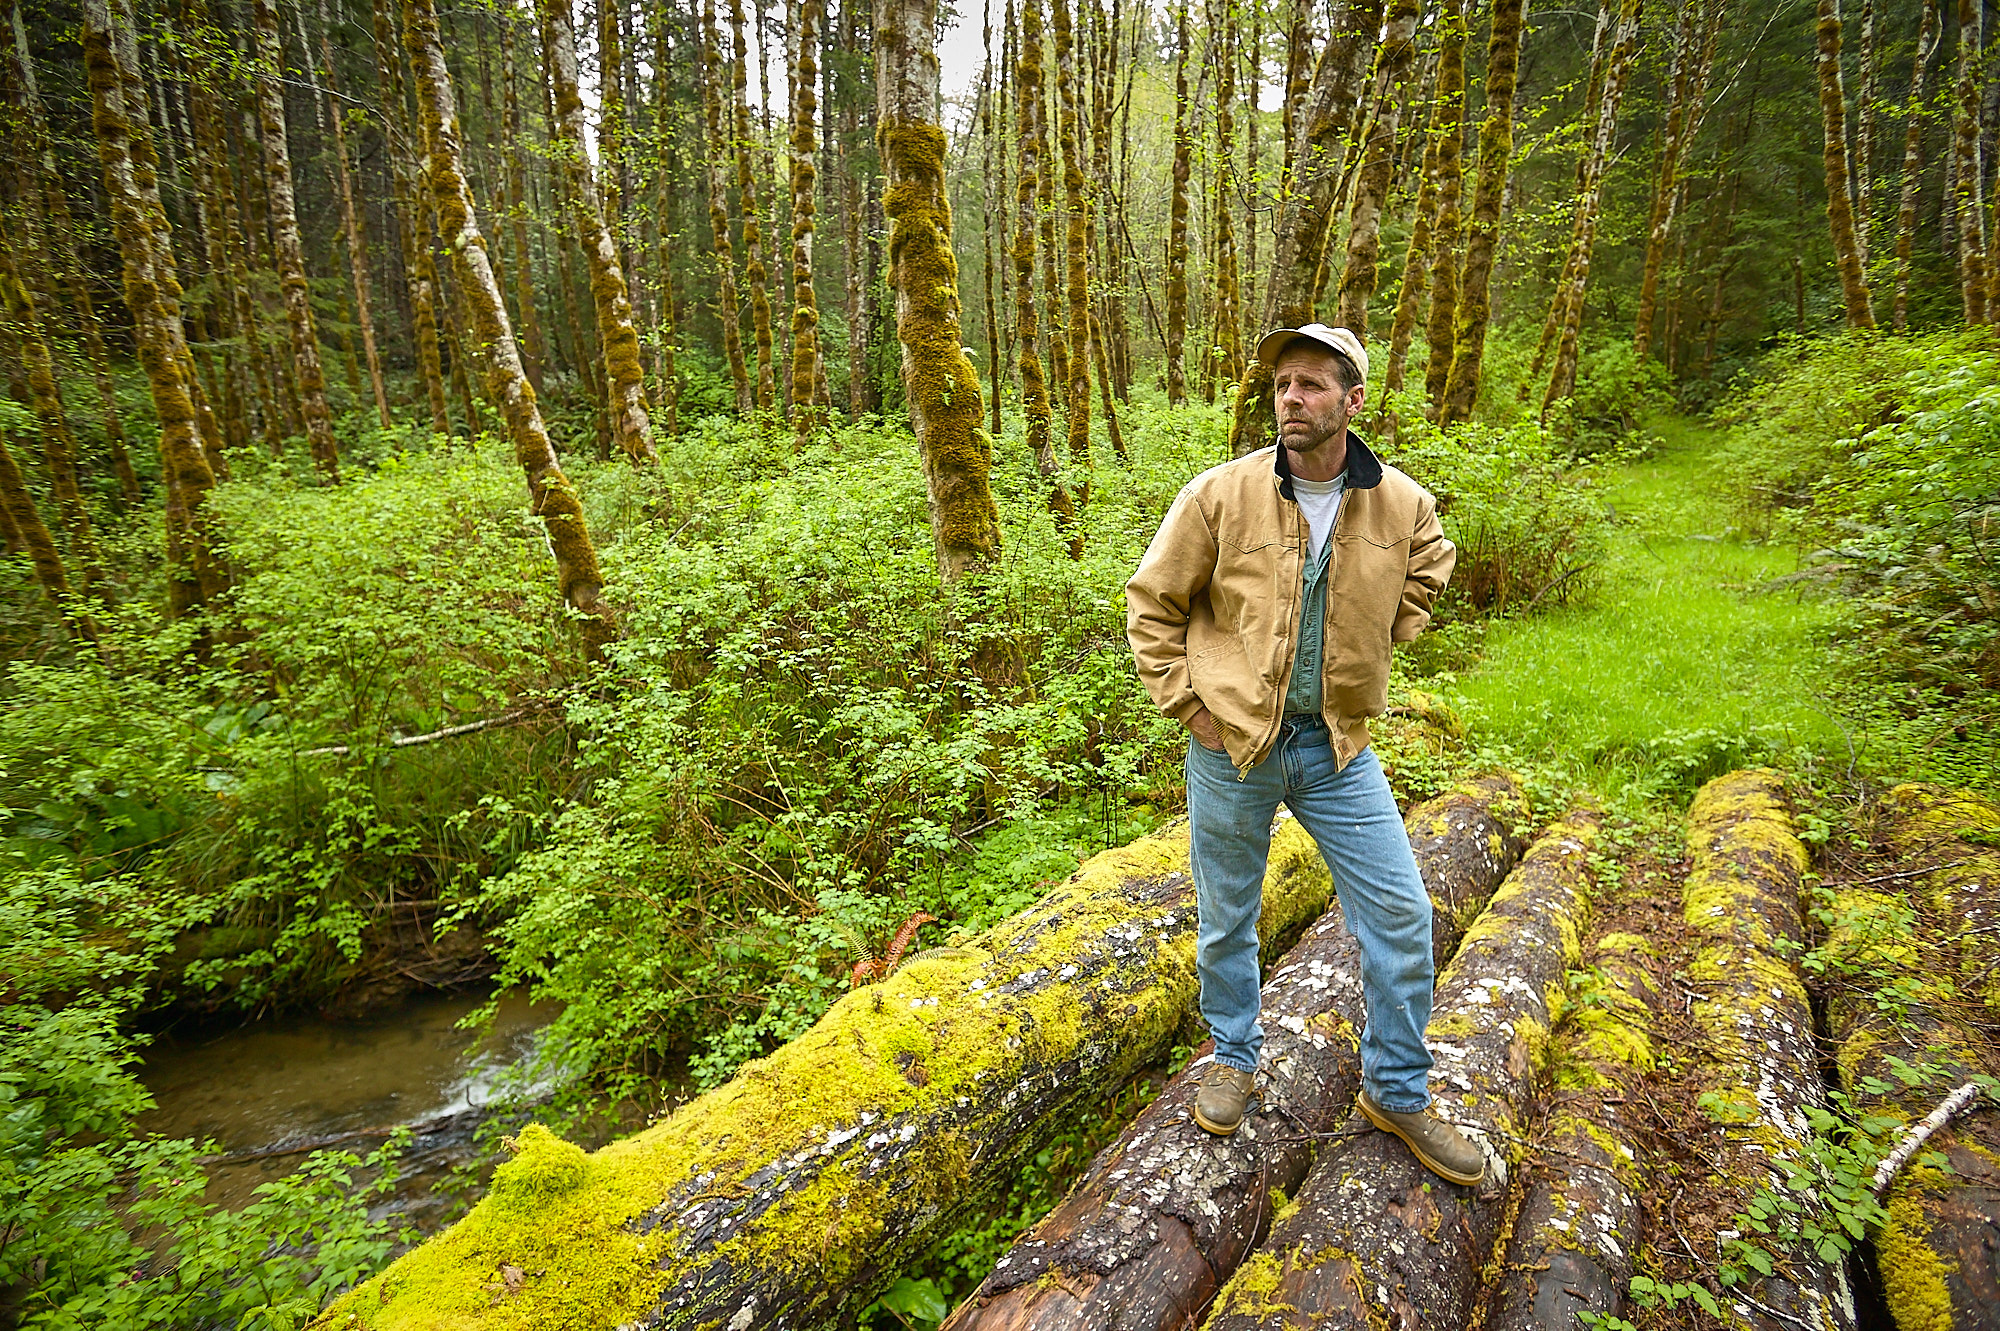 Scott Cook, Commercial Fisherman, Commercial Tree Farmer, Commercial Pilot